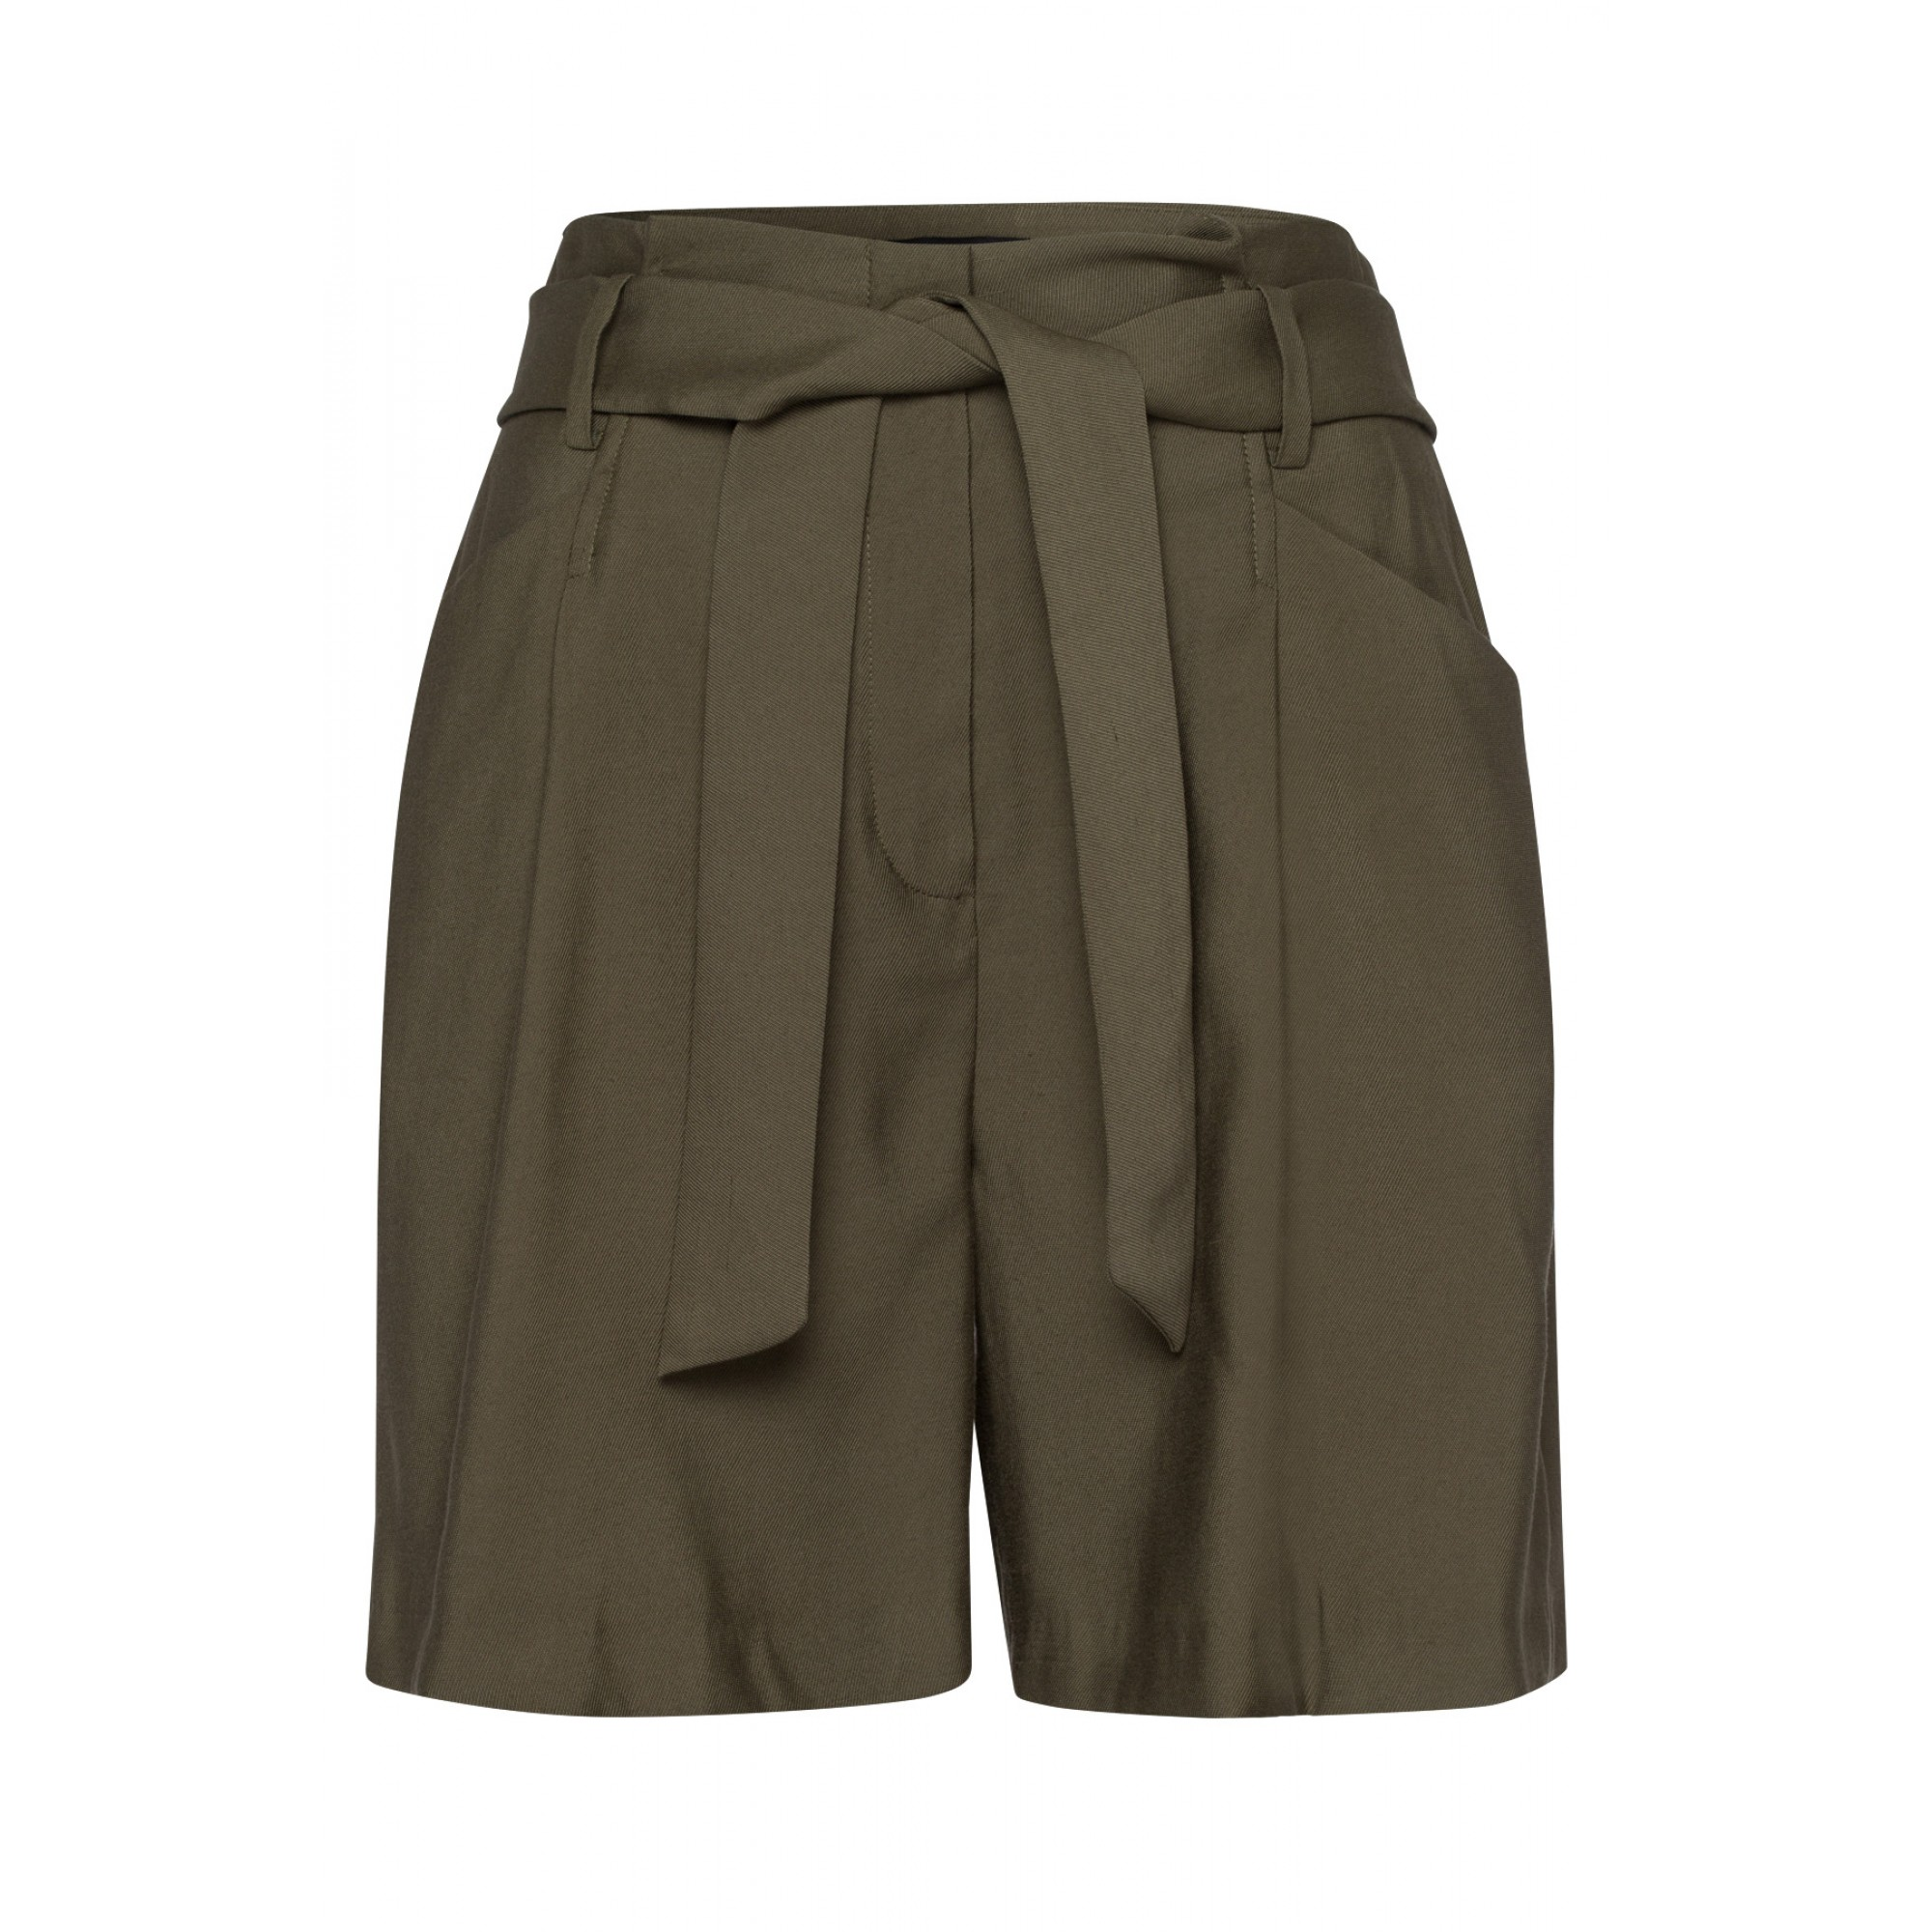 City-Bermuda, new khaki 01054002-0666 1